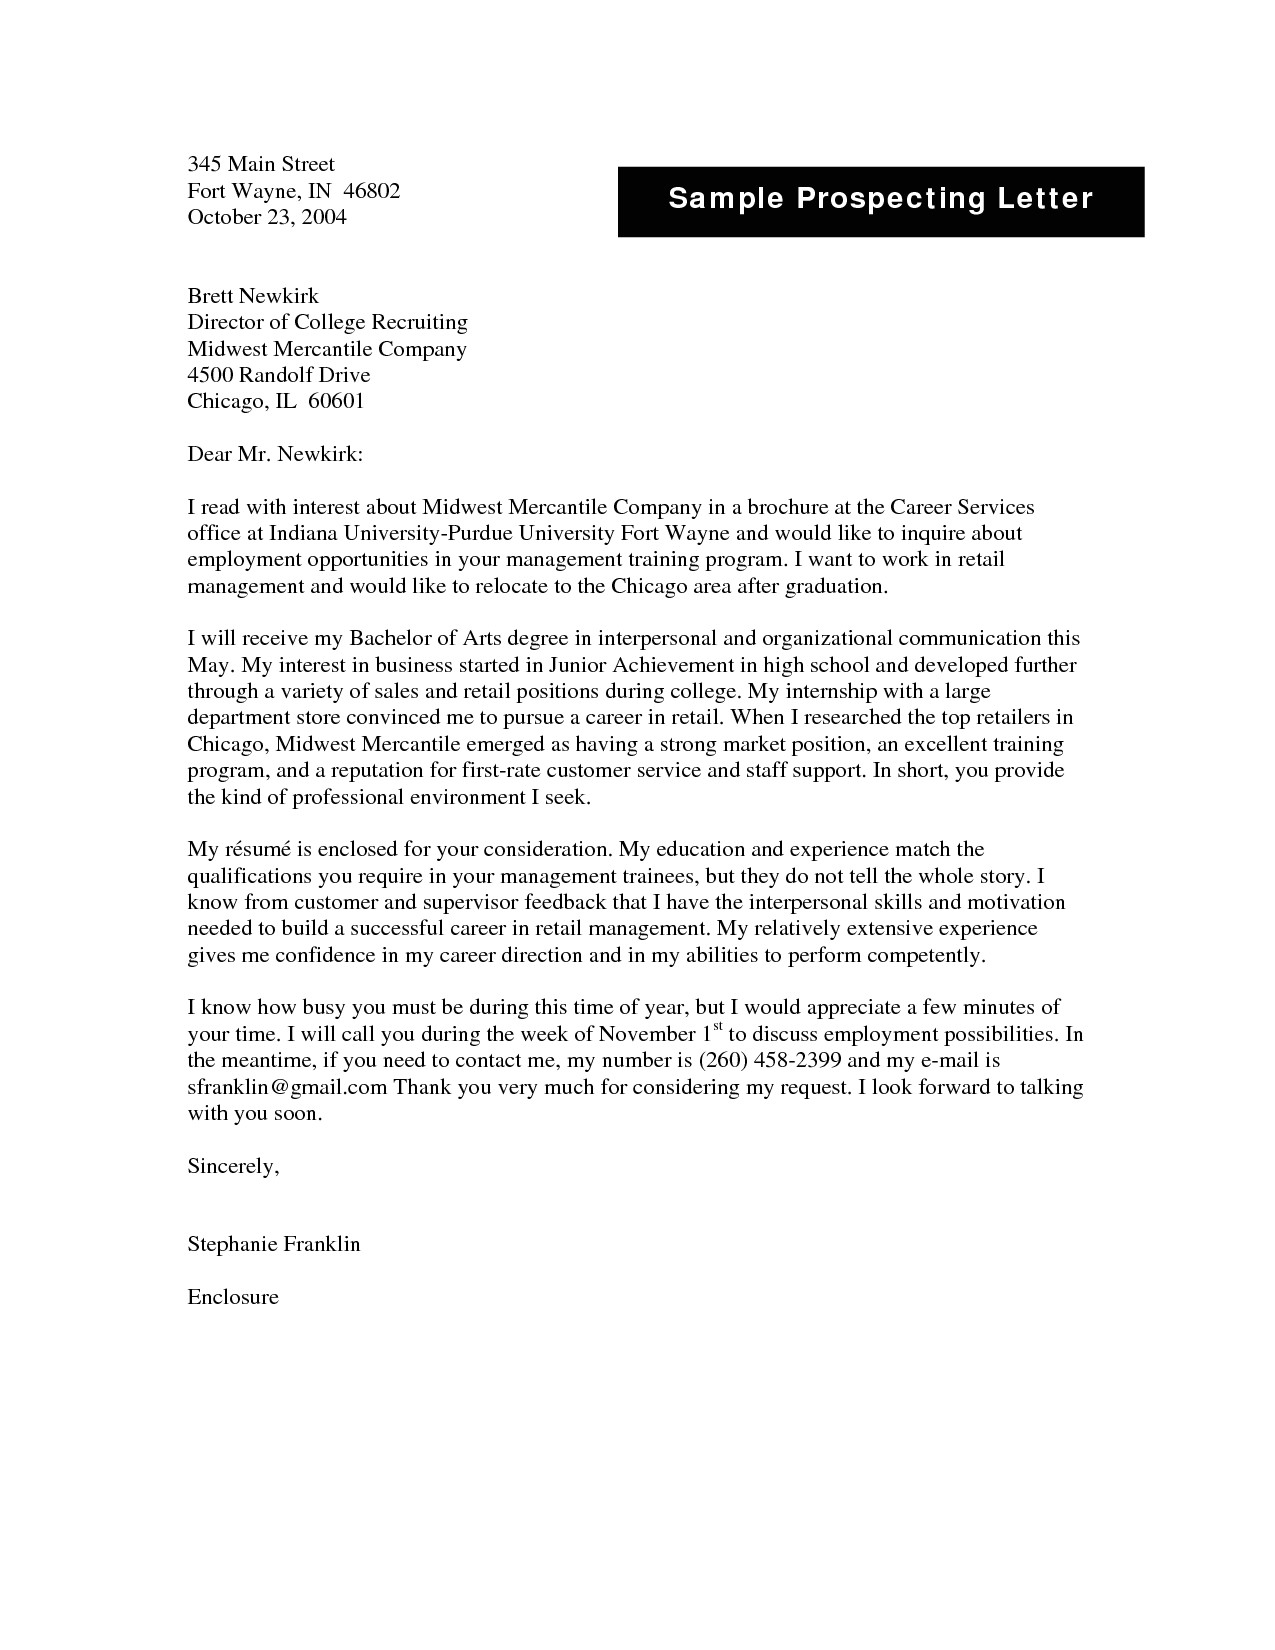 recommendation letter for resident advisor